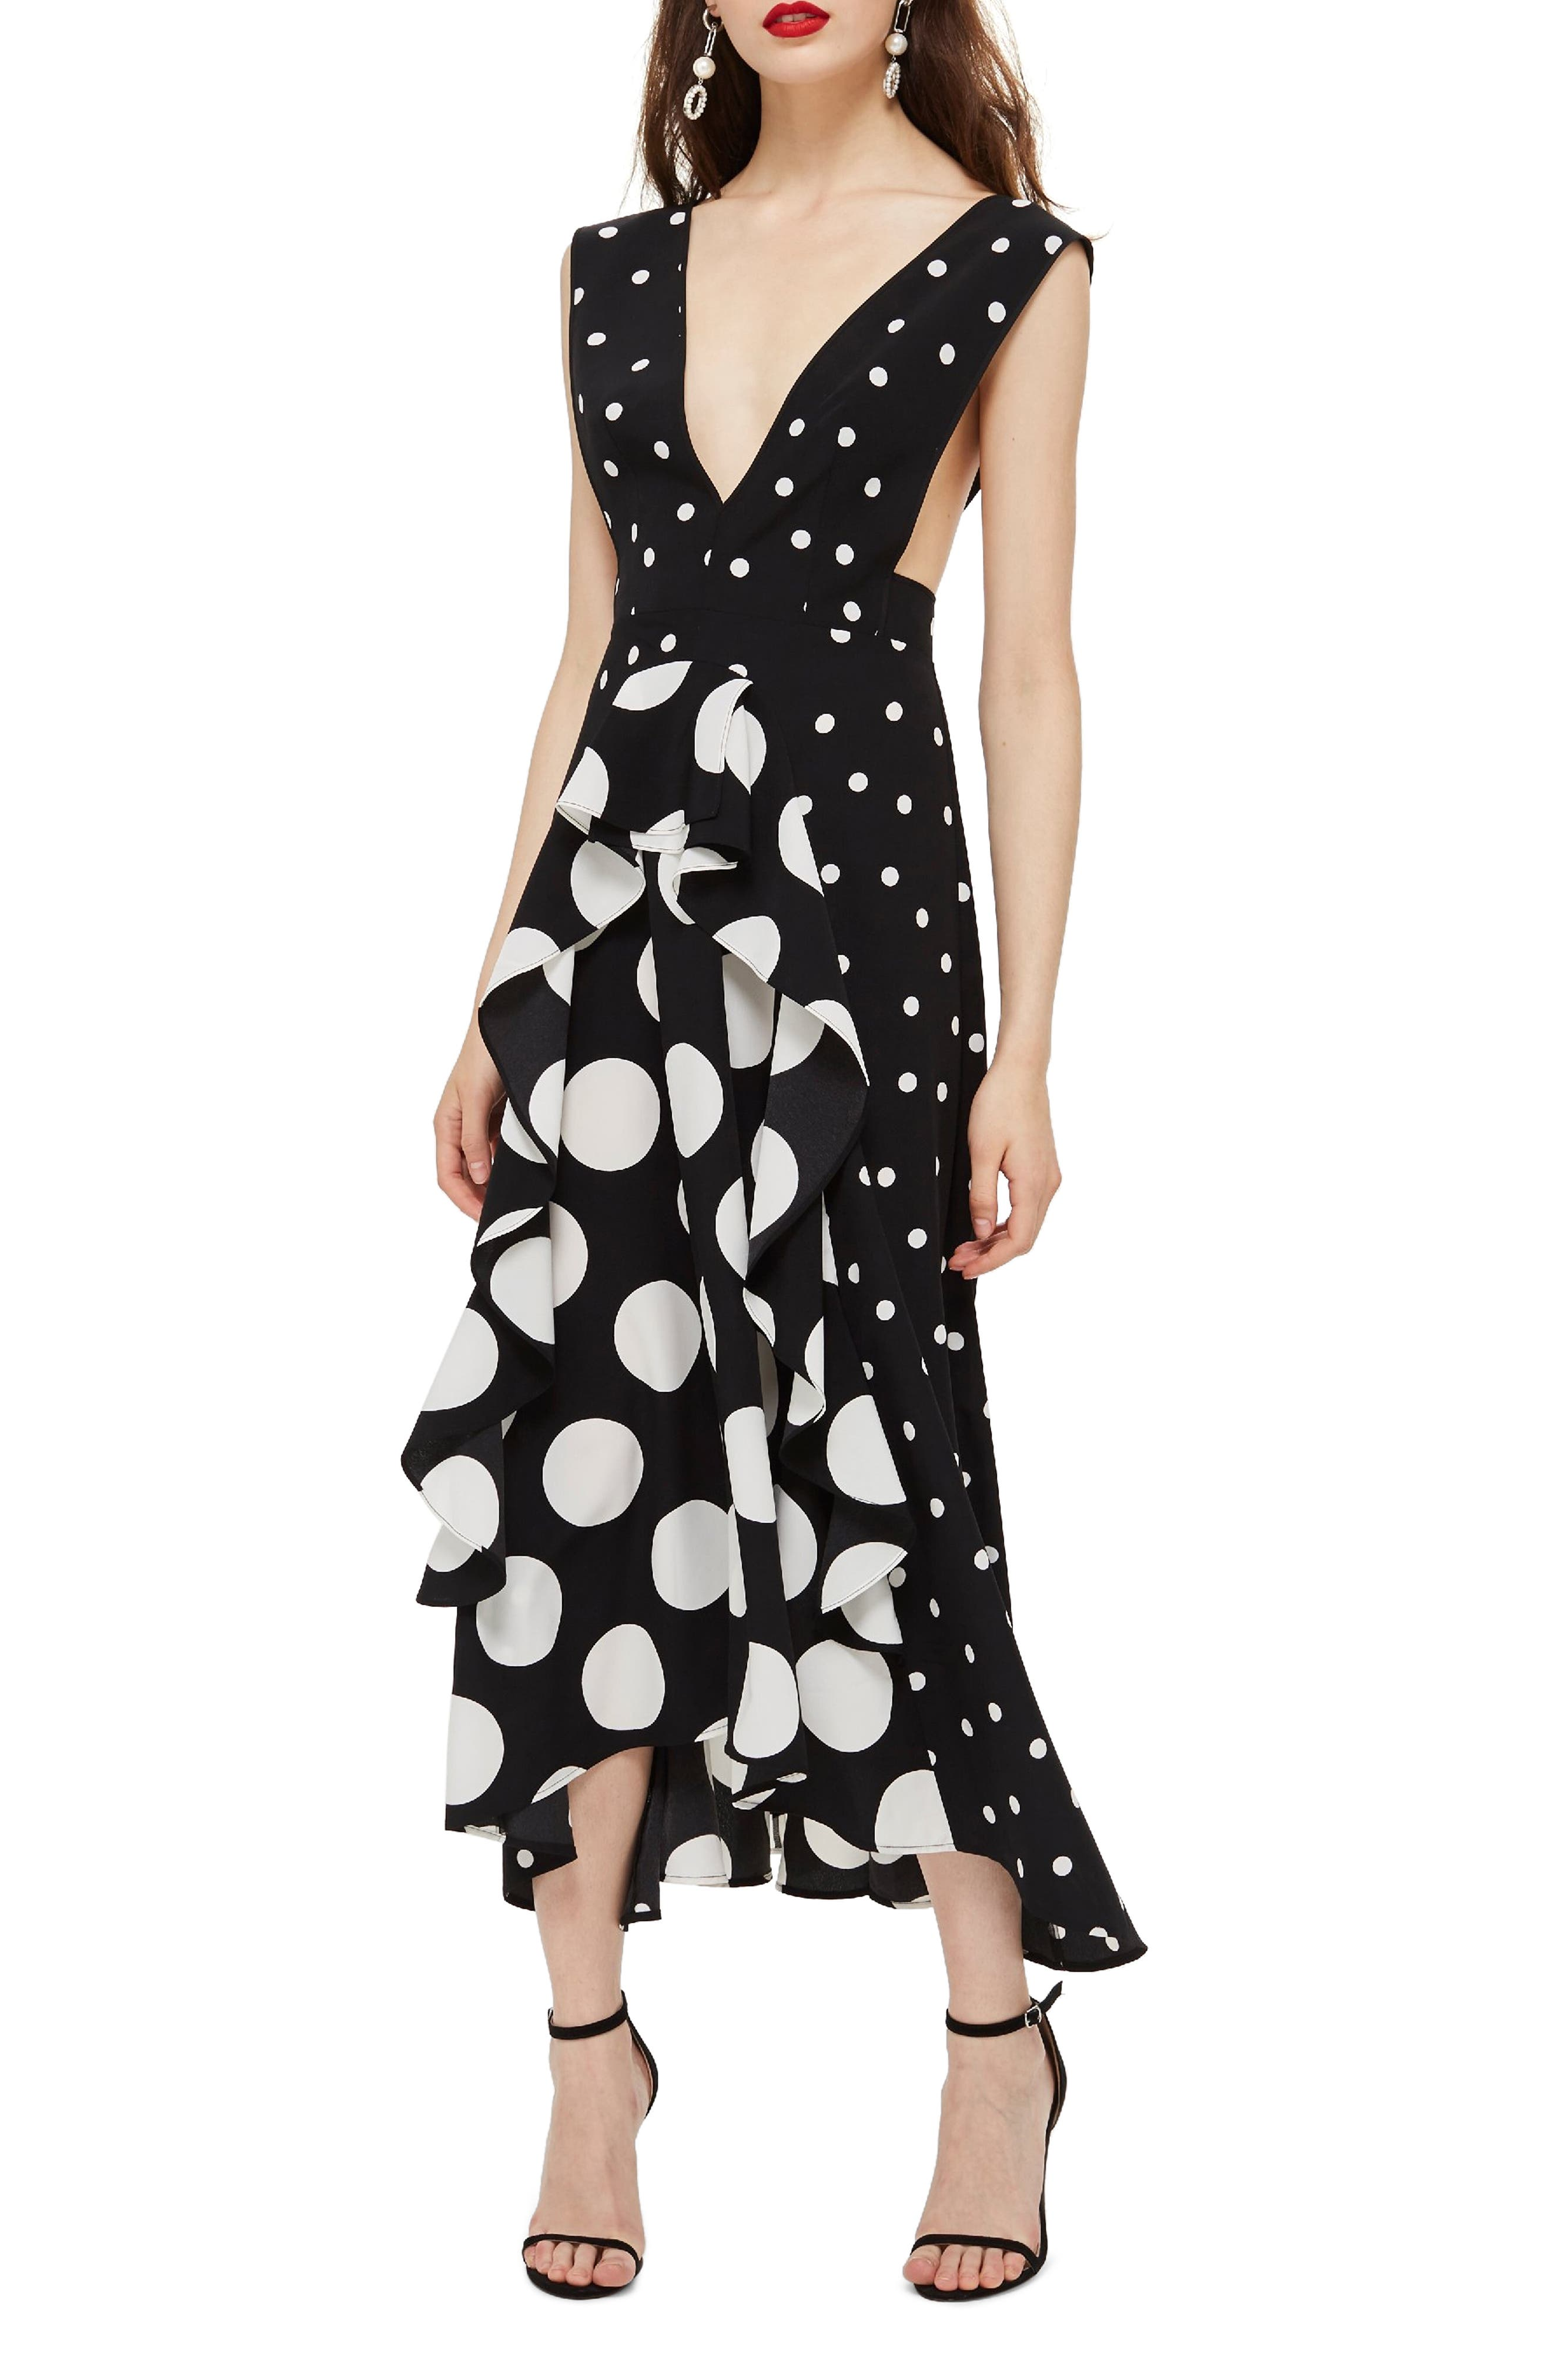 TOPSHOP, Spot Plunge Neck Midi Dress, Main thumbnail 1, color, 001